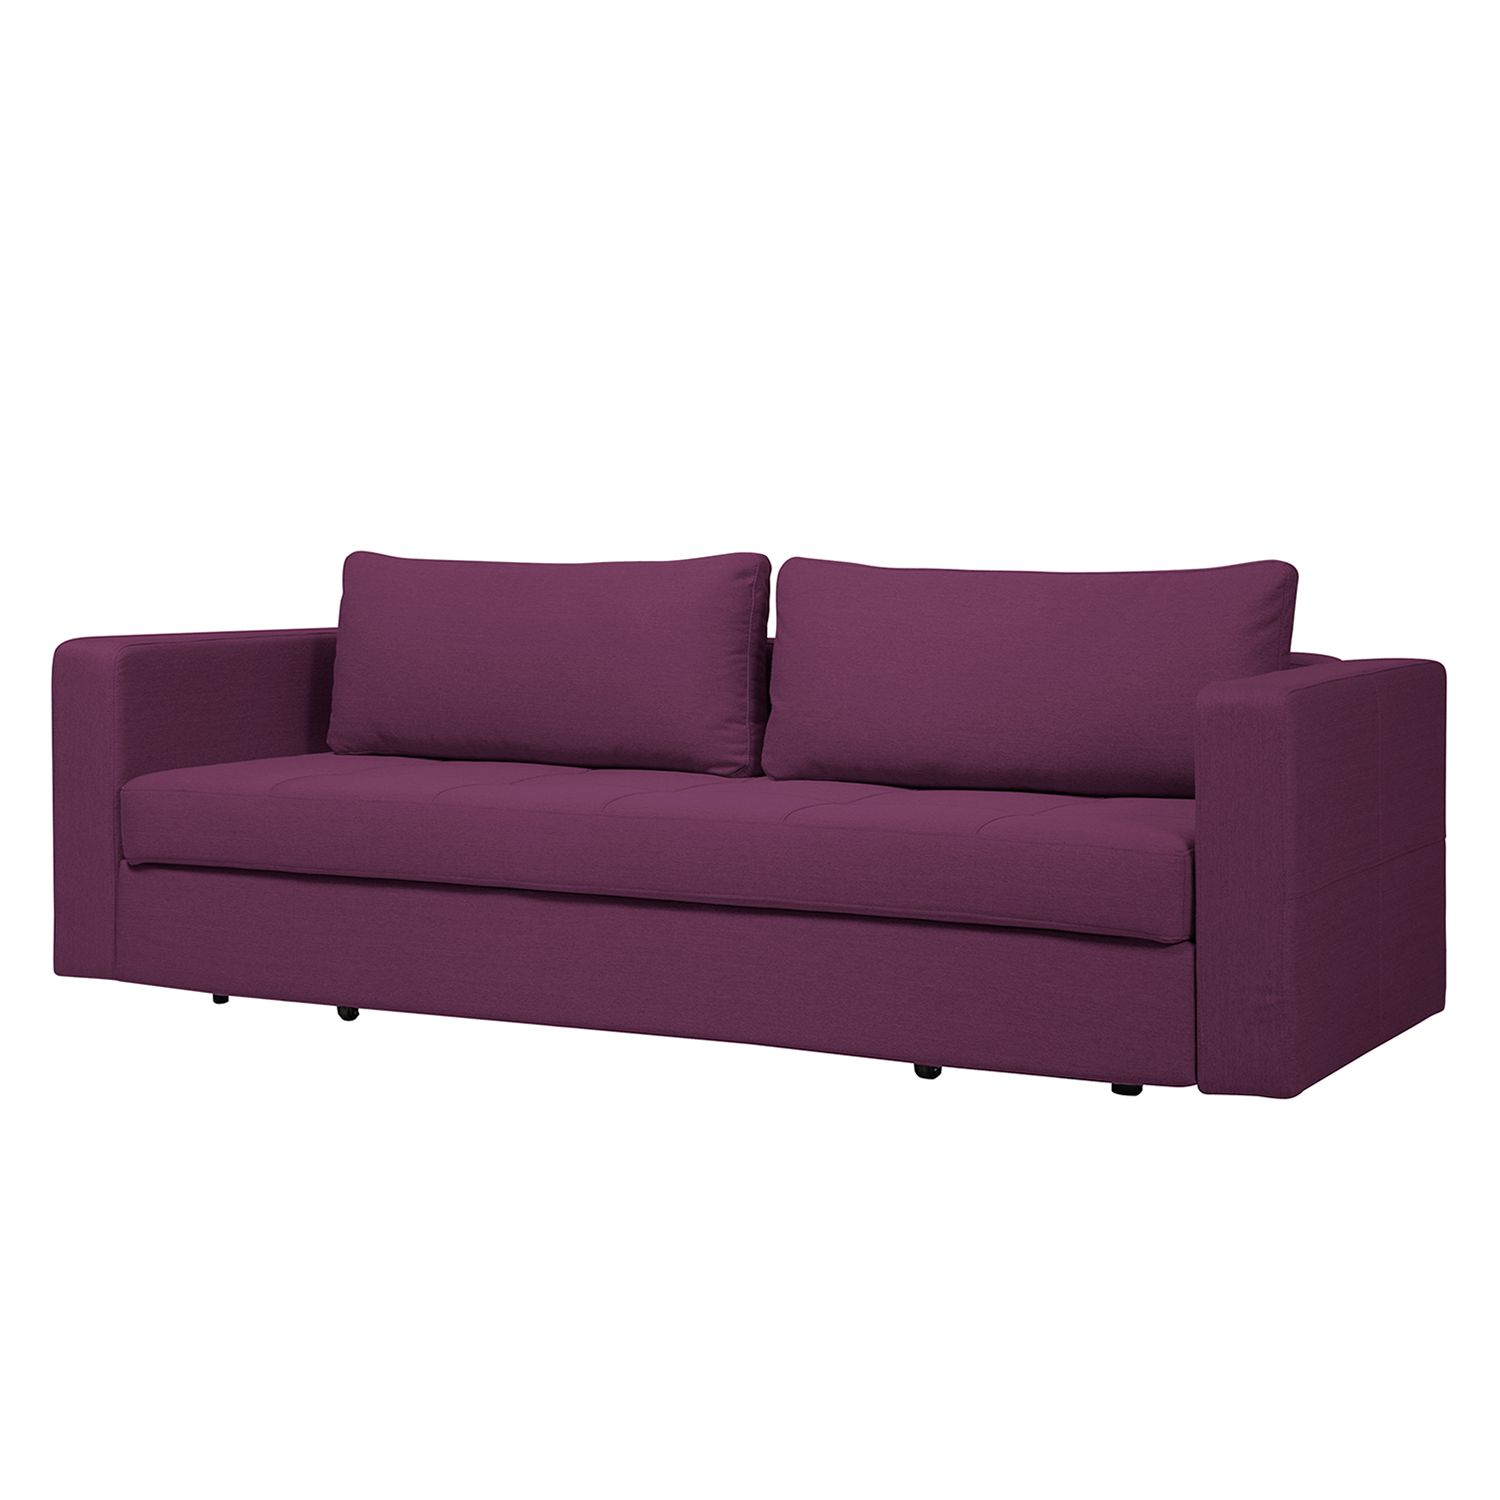 schlafsofa eperny webstoff stoff zahira aubergine fredriks. Black Bedroom Furniture Sets. Home Design Ideas